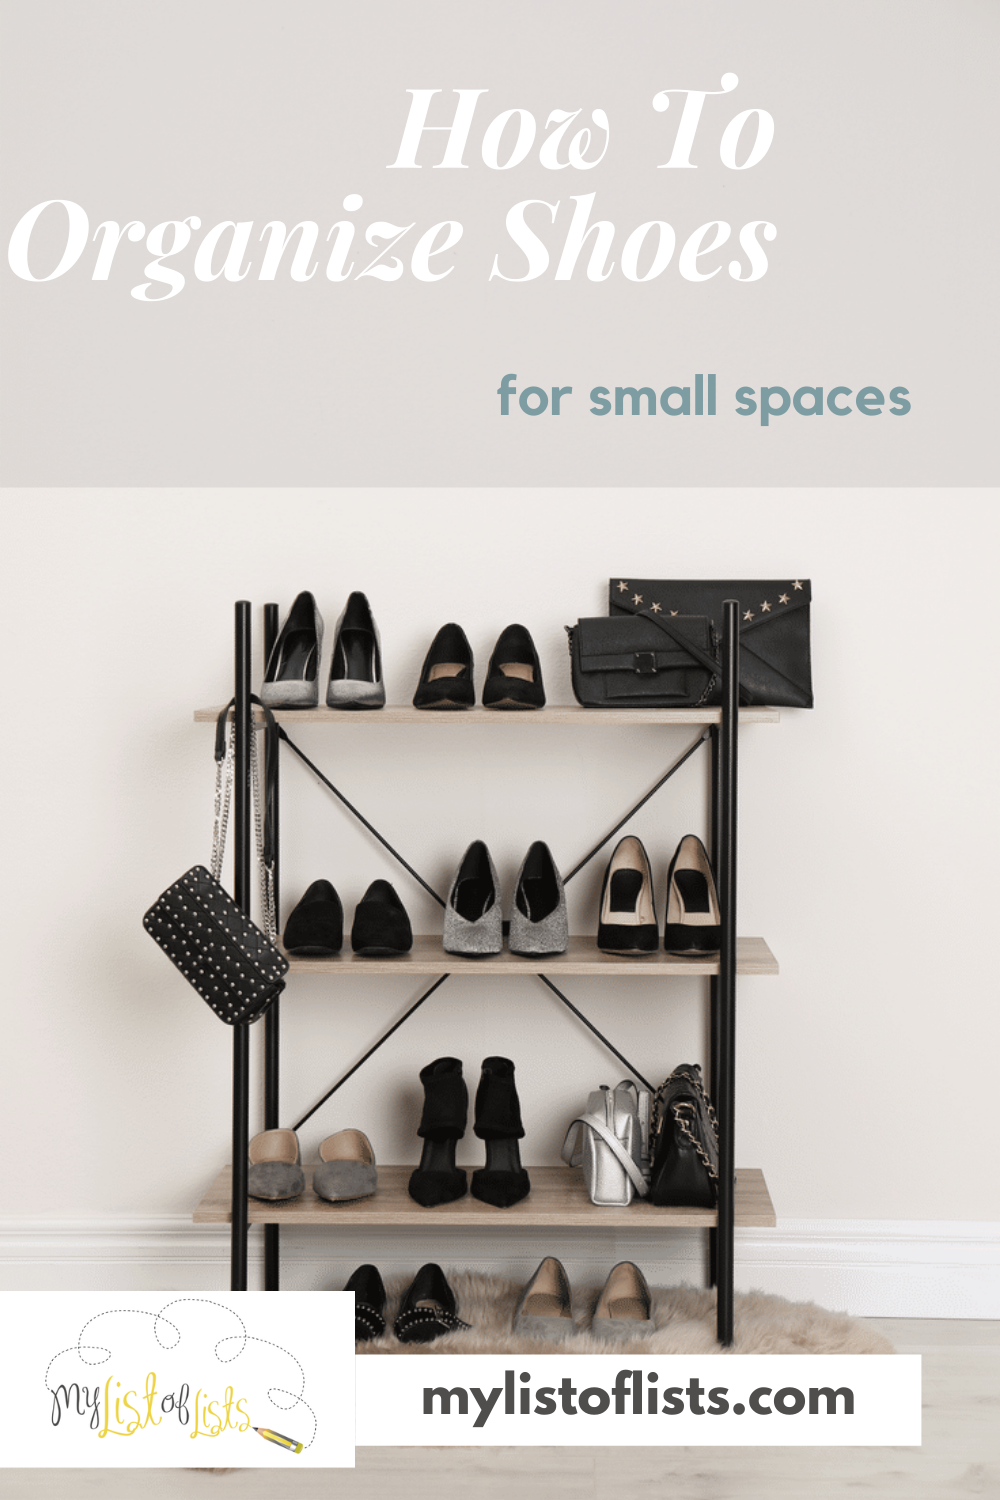 Organize your shoes fast with these great DIY projects and organization ideas. Even if you have a small space, one of these ideas should be perfect for you. #mylistoflistsblog #organization #shoes